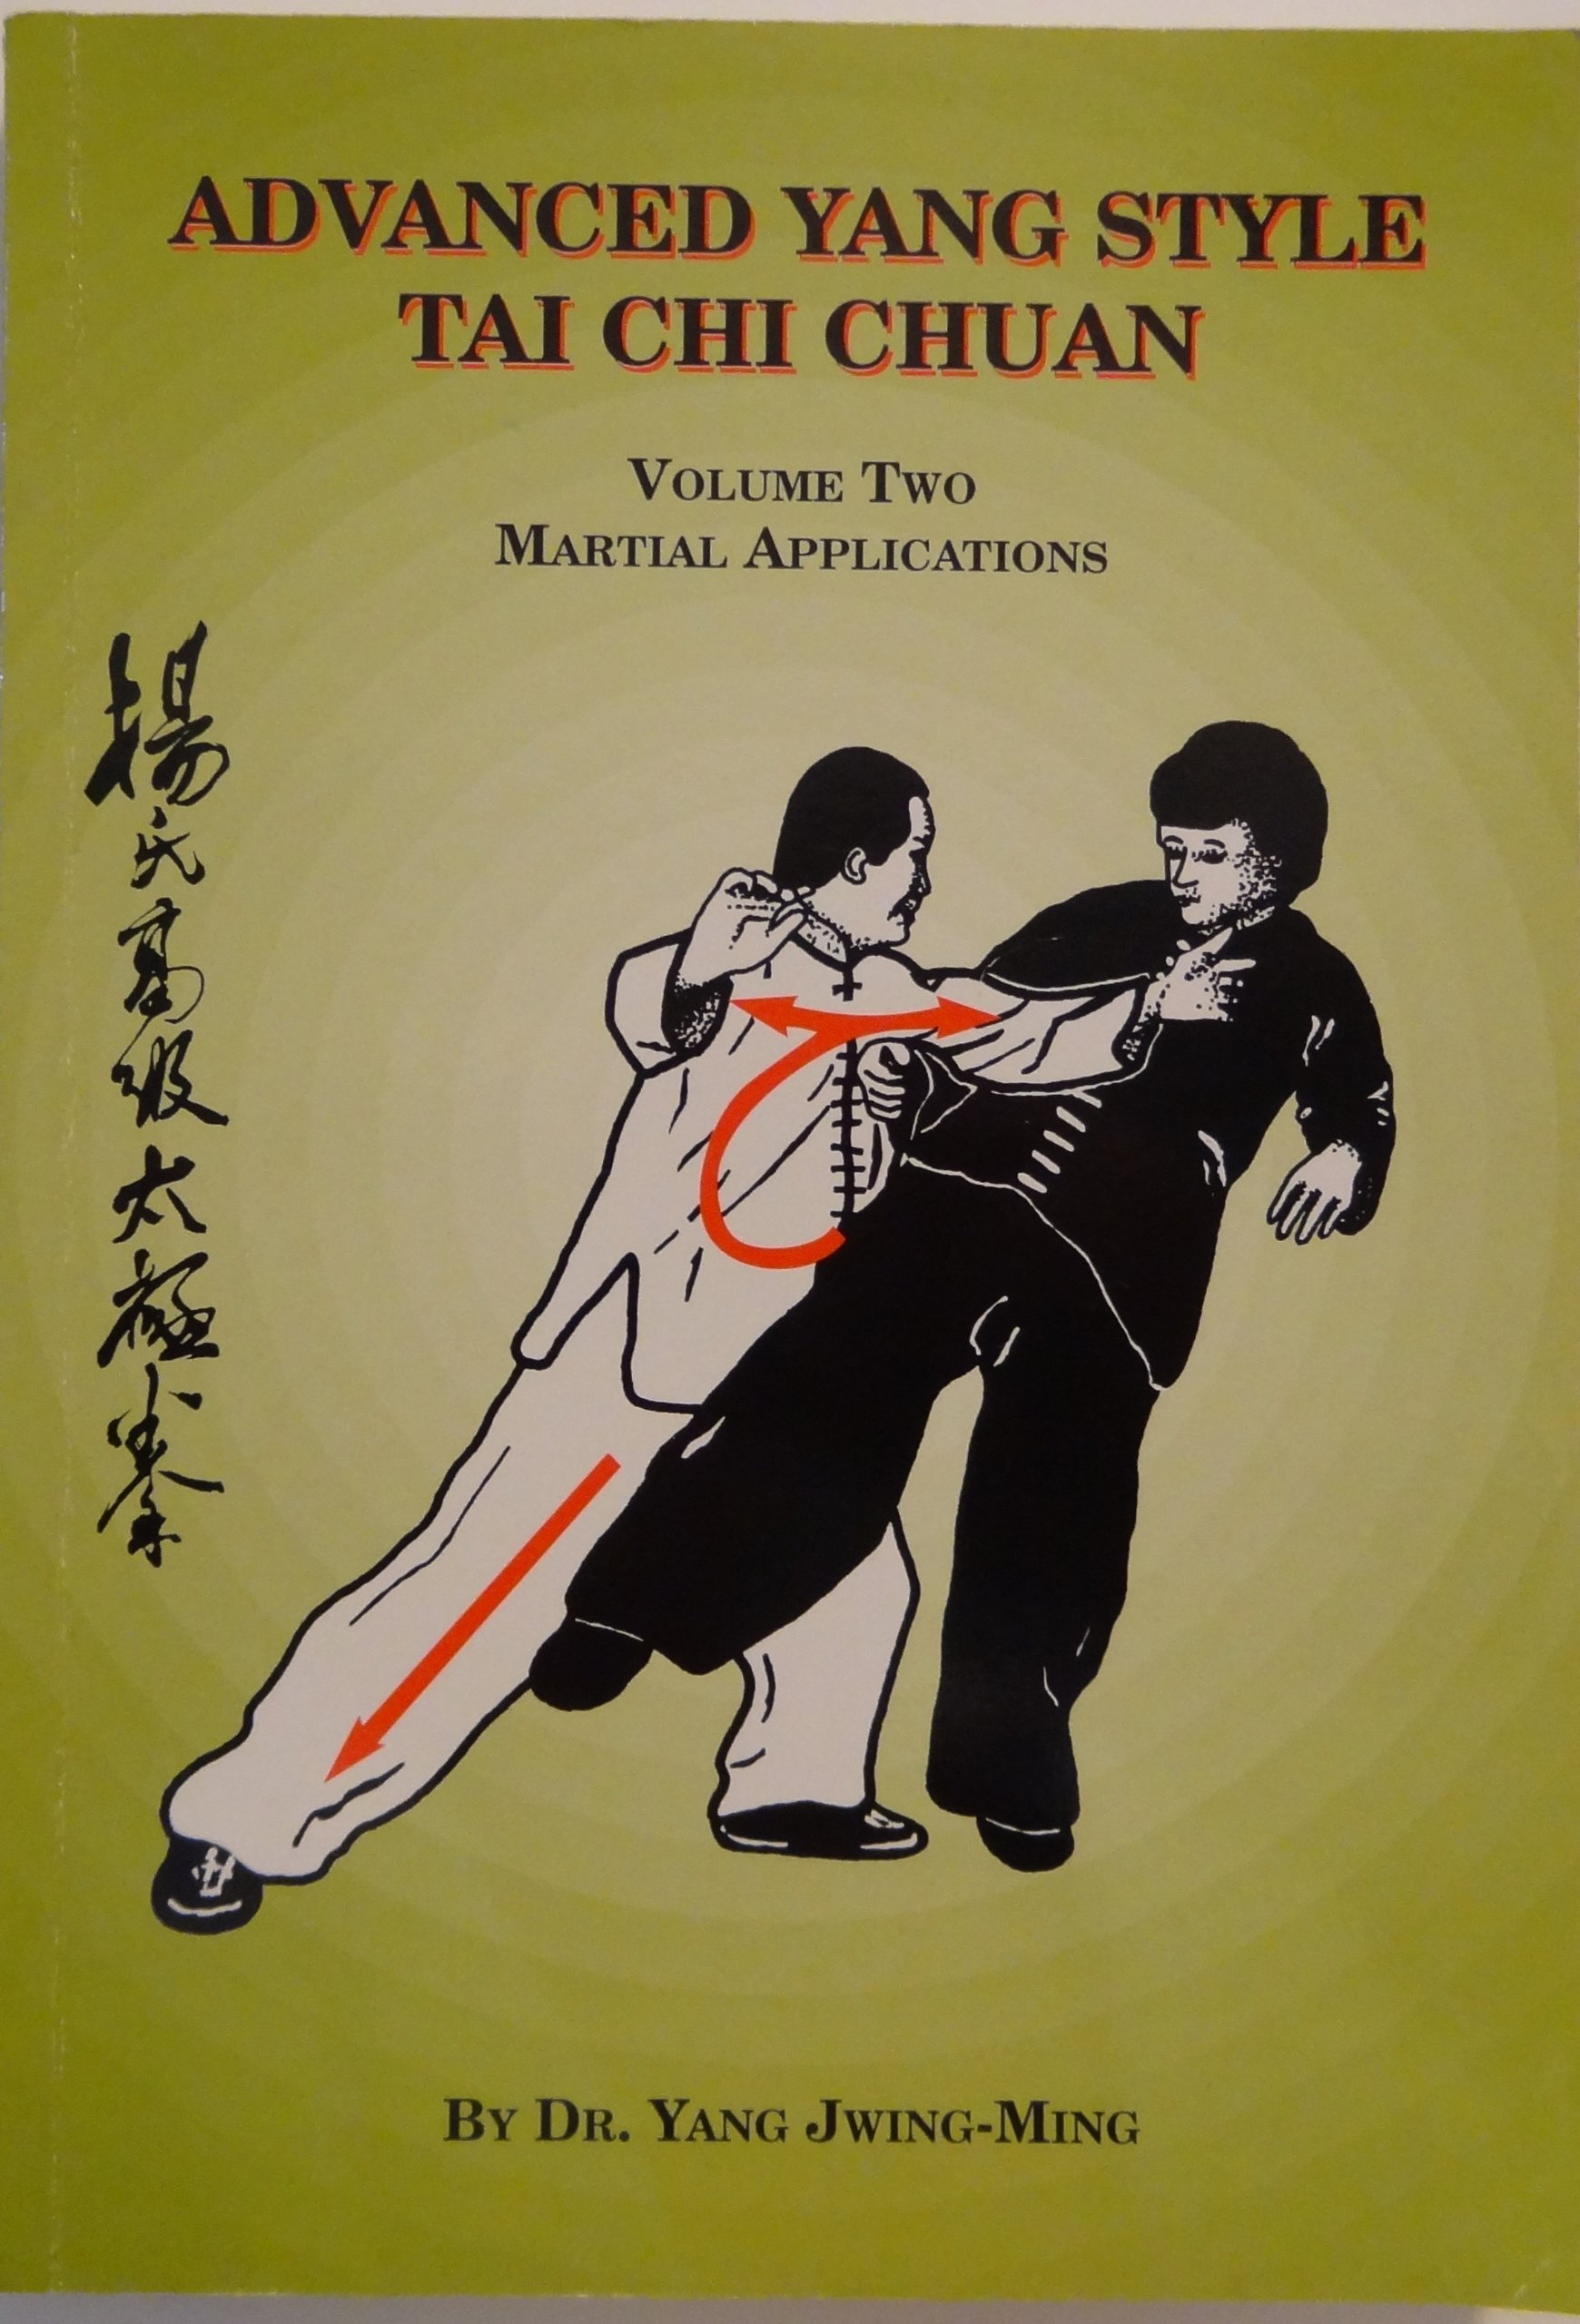 Image OfAdvanced Yang Style Tai Chi Chuan: Martial Applications